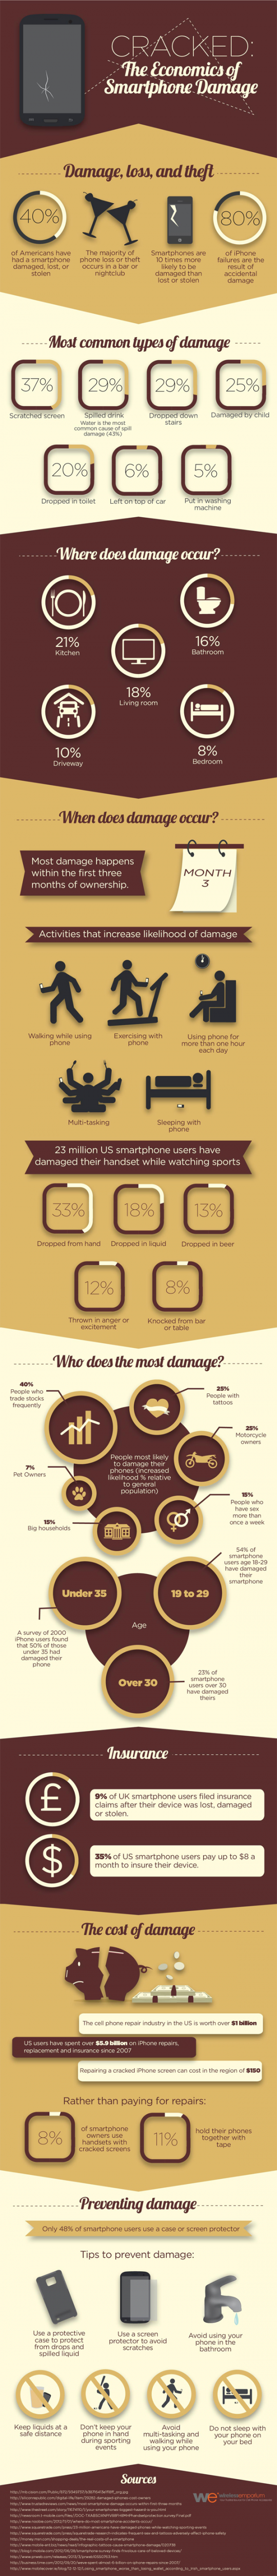 Cell Phone Smartphone Damage Prevention Infographic Cracked: The Economics of Smartphone Damage